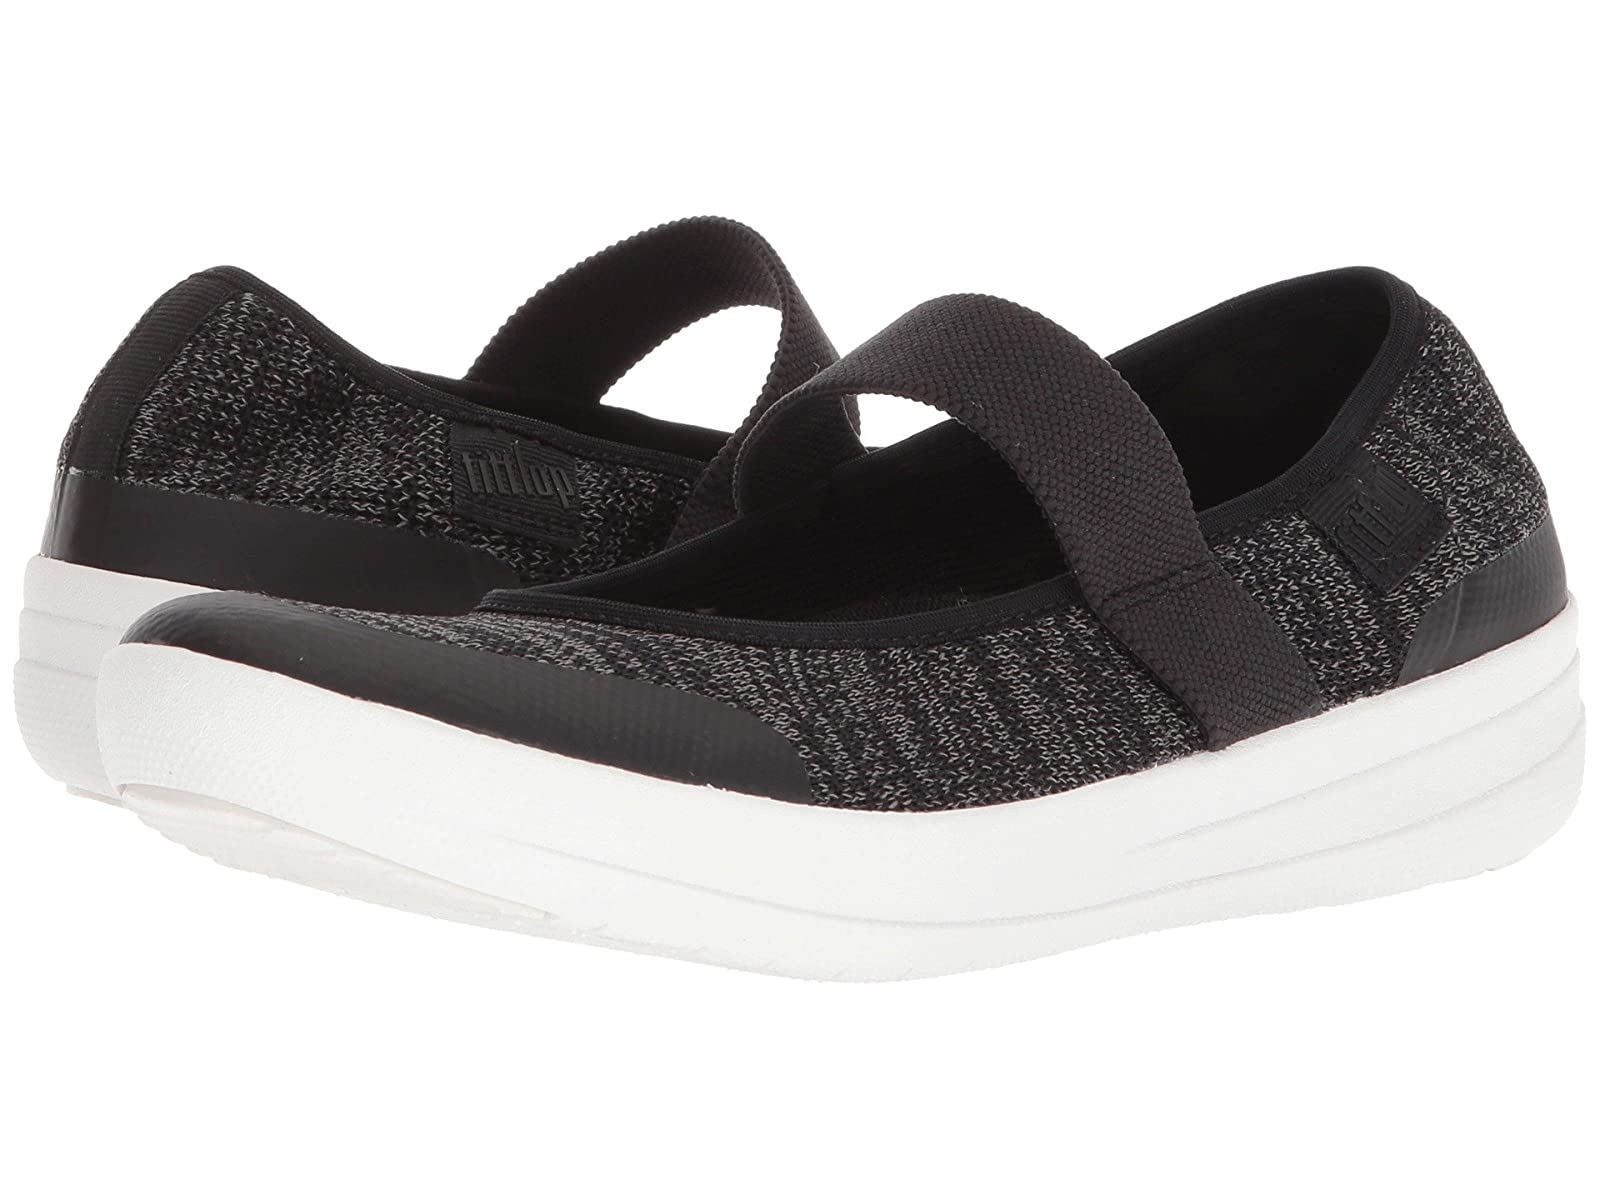 FitFlop Uberknit Mary JaneCheap and distinctive eye-catching shoes